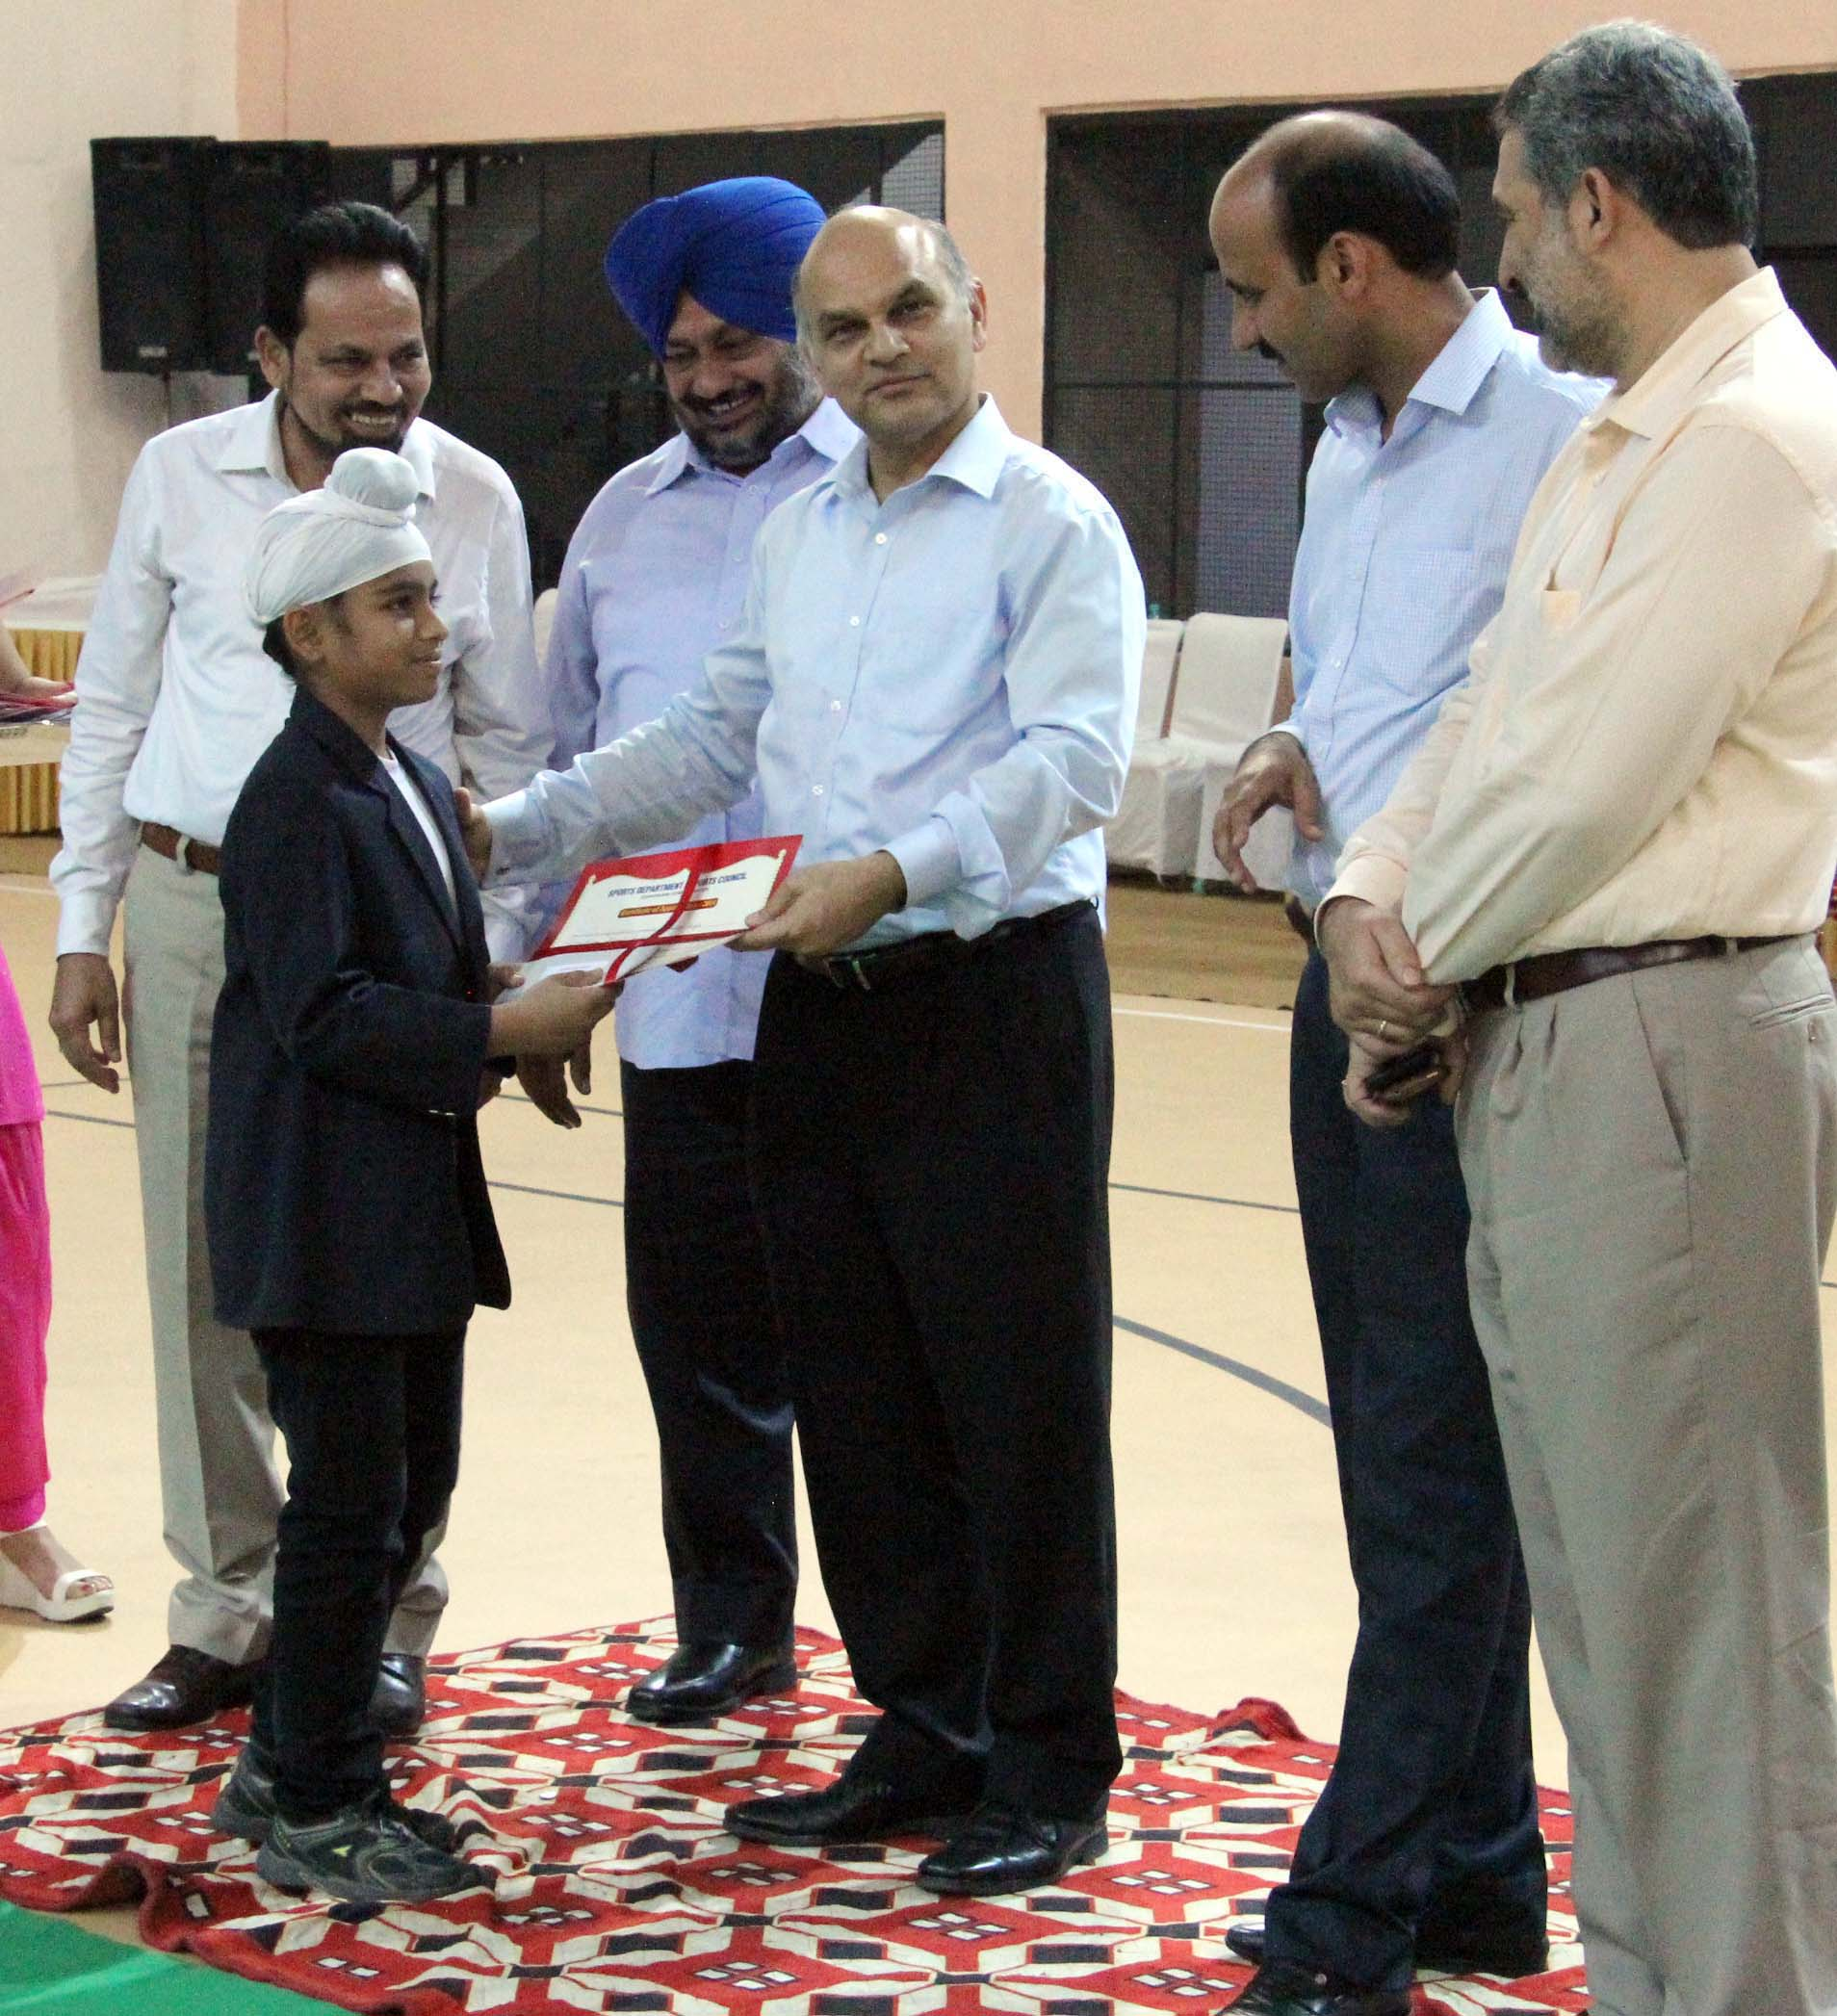 The Adviser to the Administrator, UT, Chandigarh, Mr. K.K. Sharma honoring the outstanding sports players and coaches in the Cash Awards ceremony at Sports Complex, Sector-42, Chandigarh on Thursday, October 30, 2014.